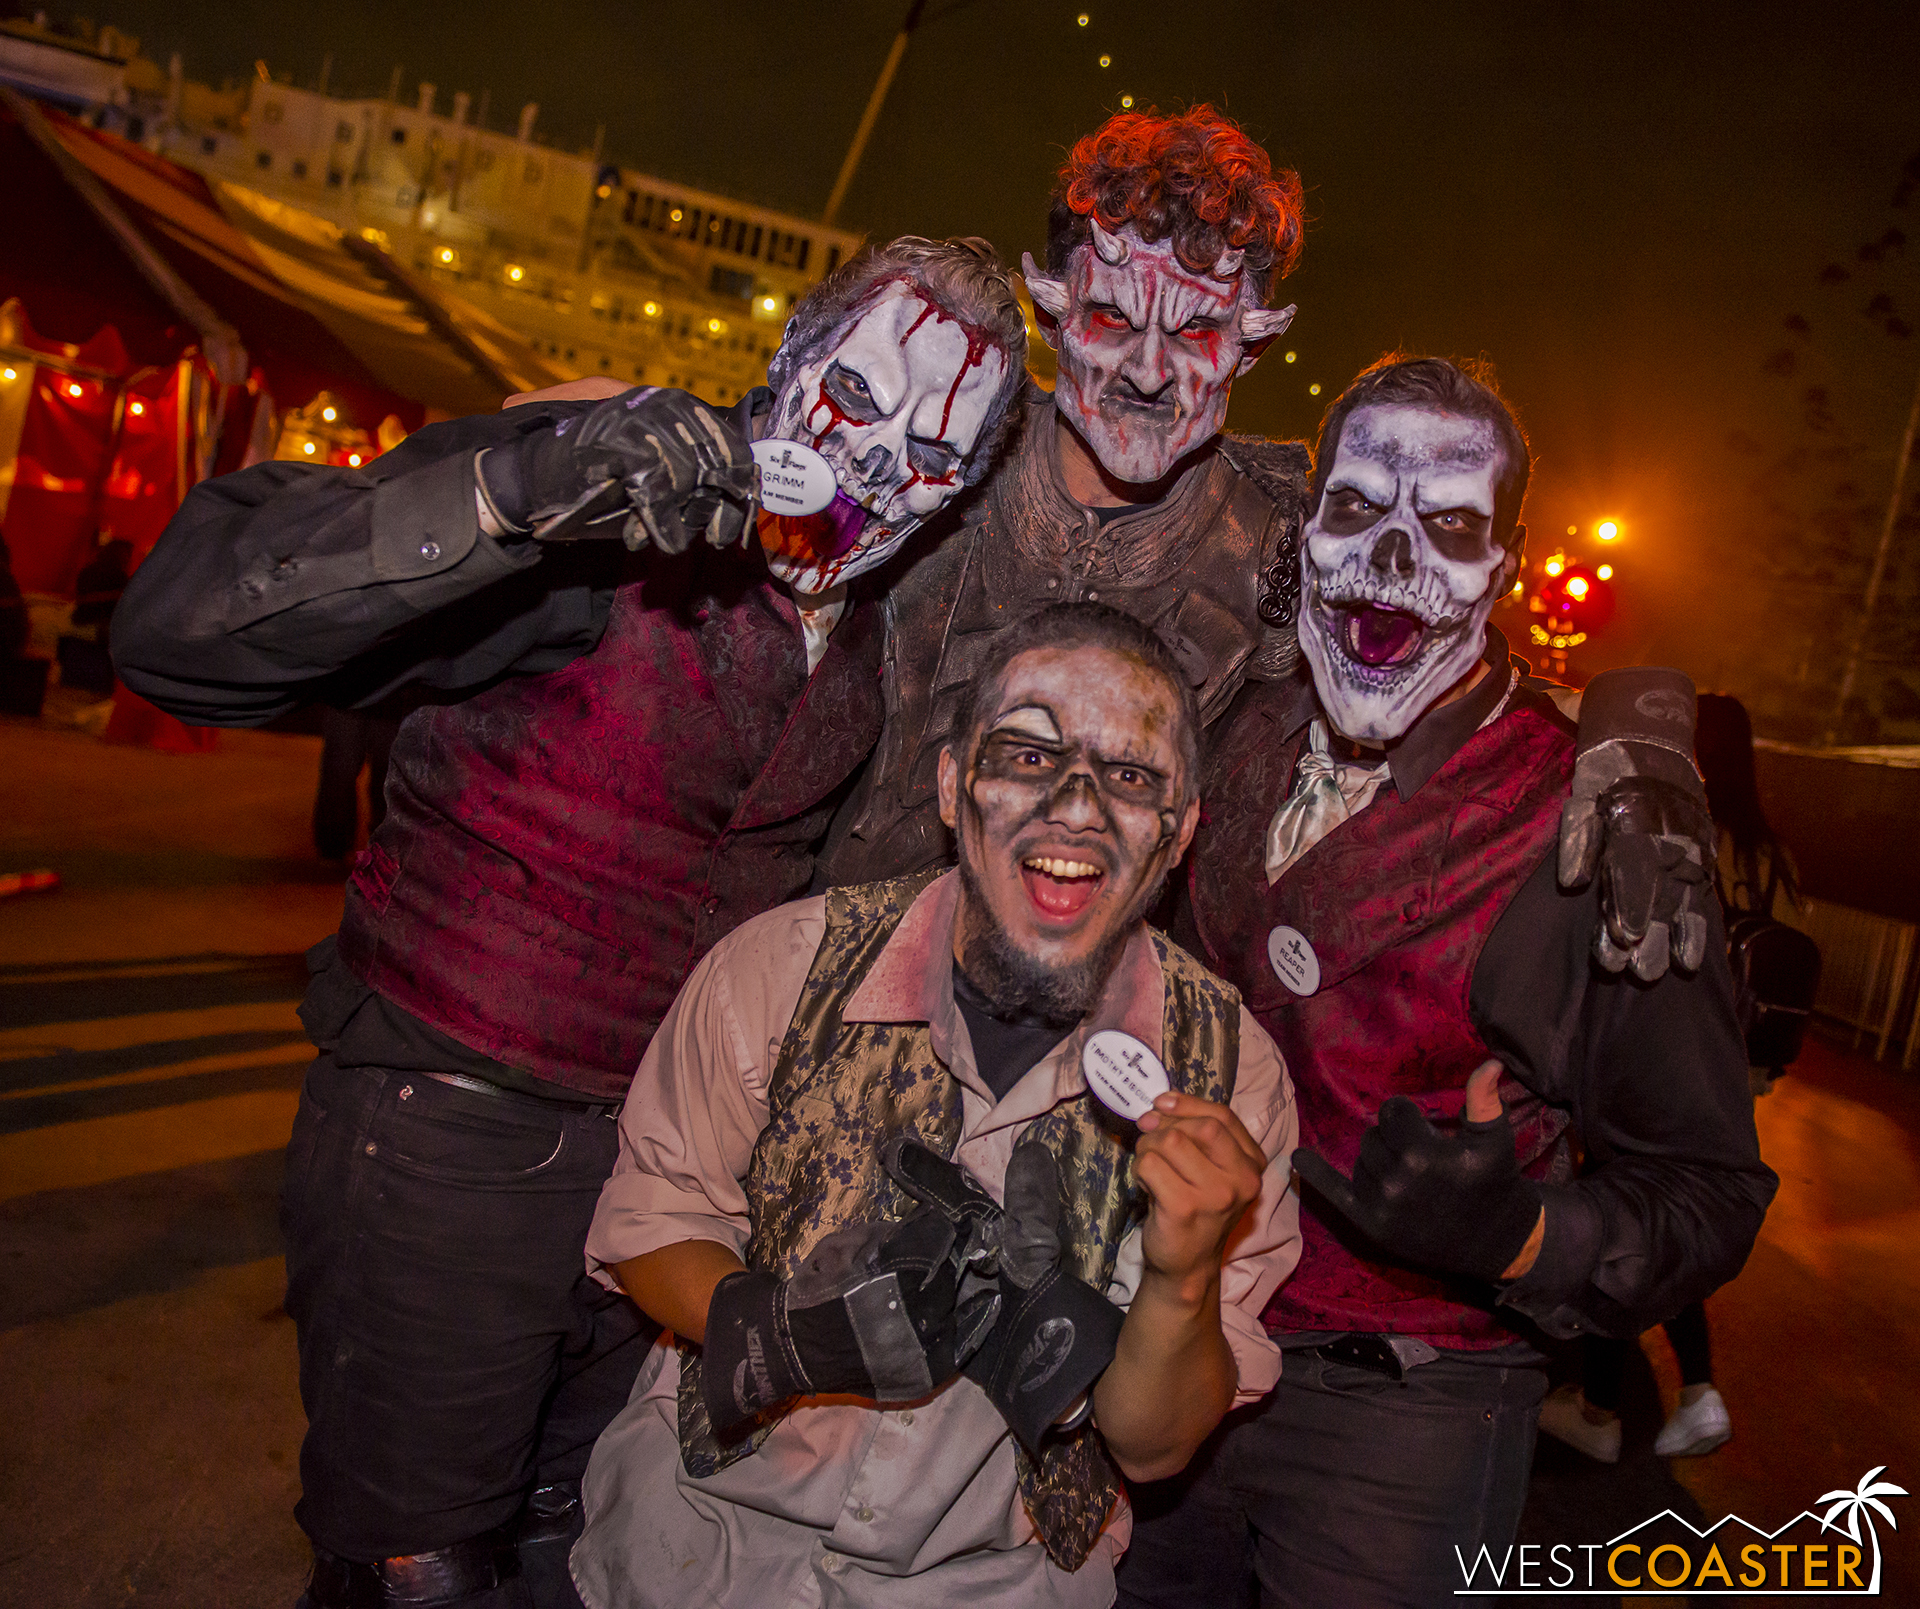 The Six Flags monsters certainly came a long way to participate in this Long Beach event!